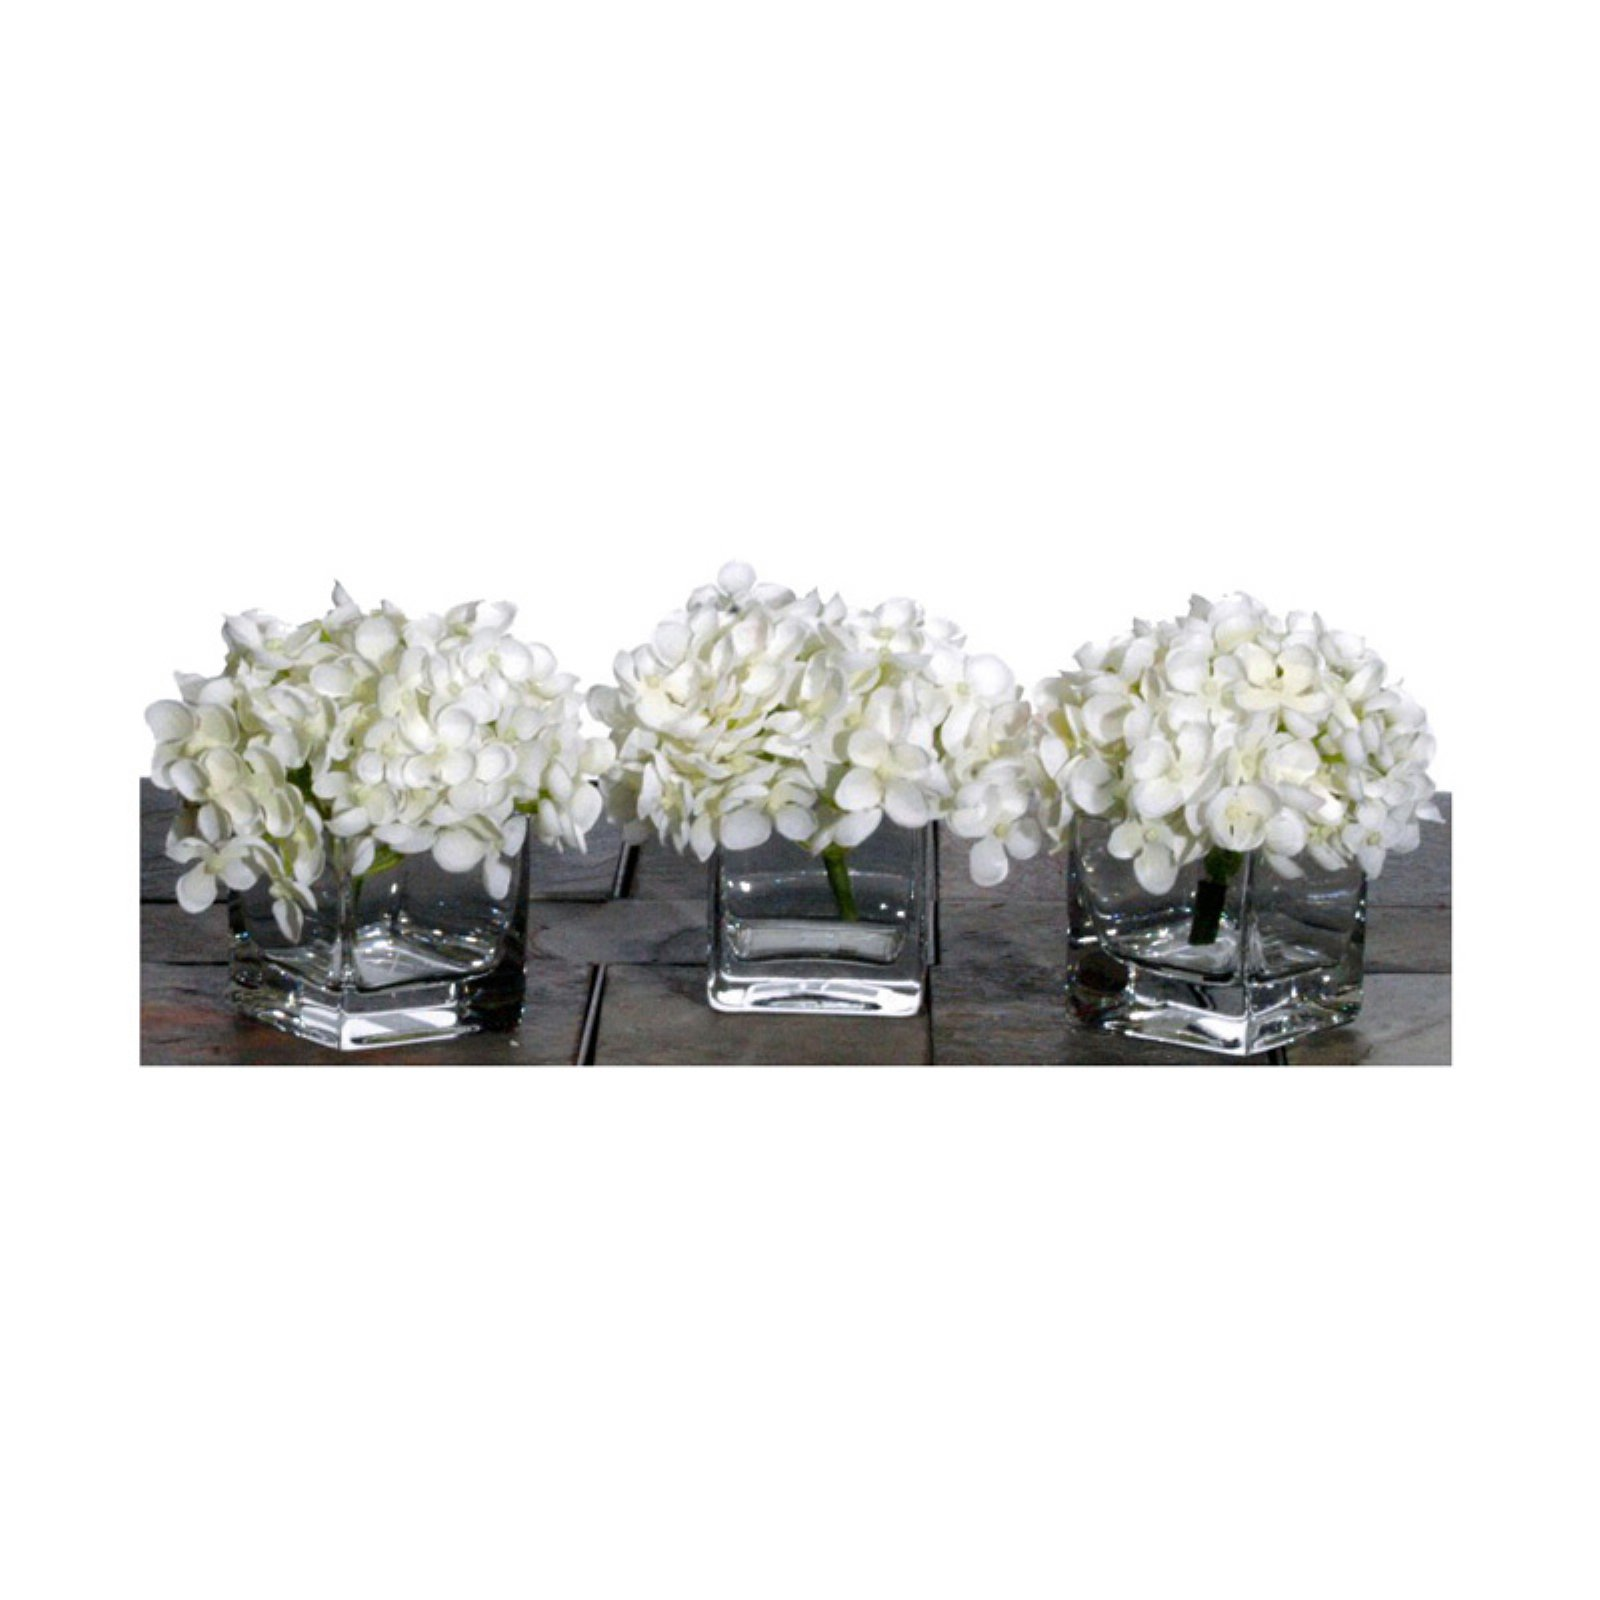 Mini Hydrangea in Cube with Acrylic Water - Small - Set of 3